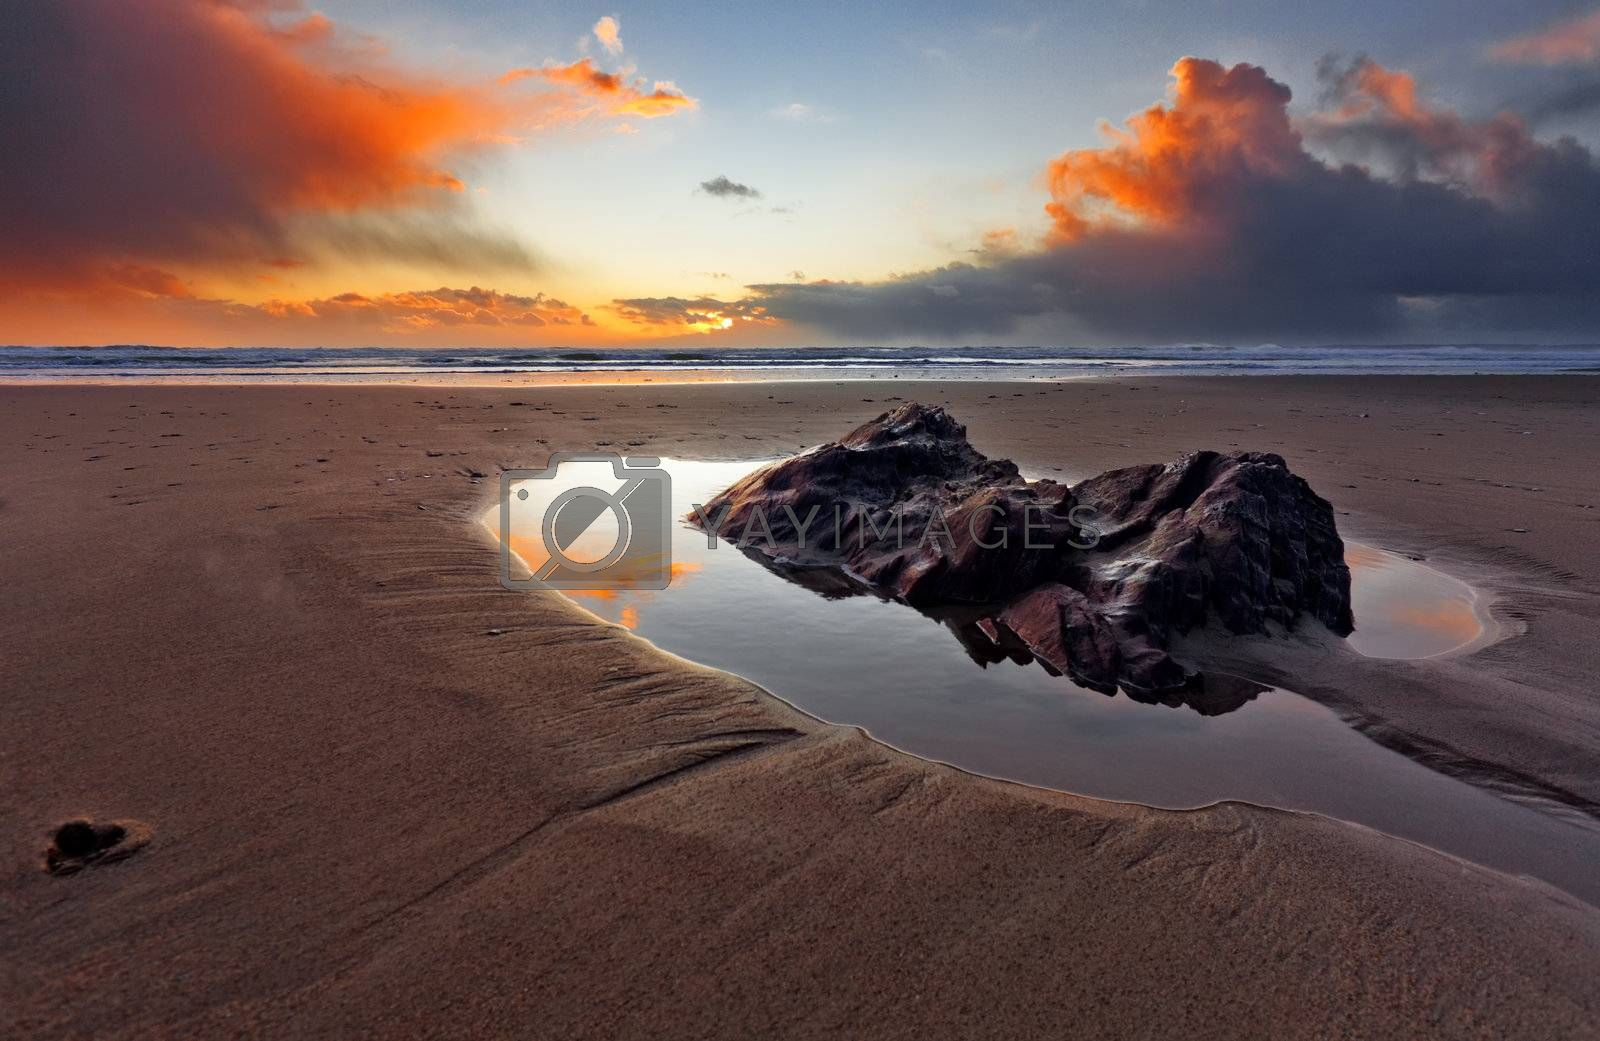 Royalty free image of Cornish reflections in Cornwall, UK by andyfox